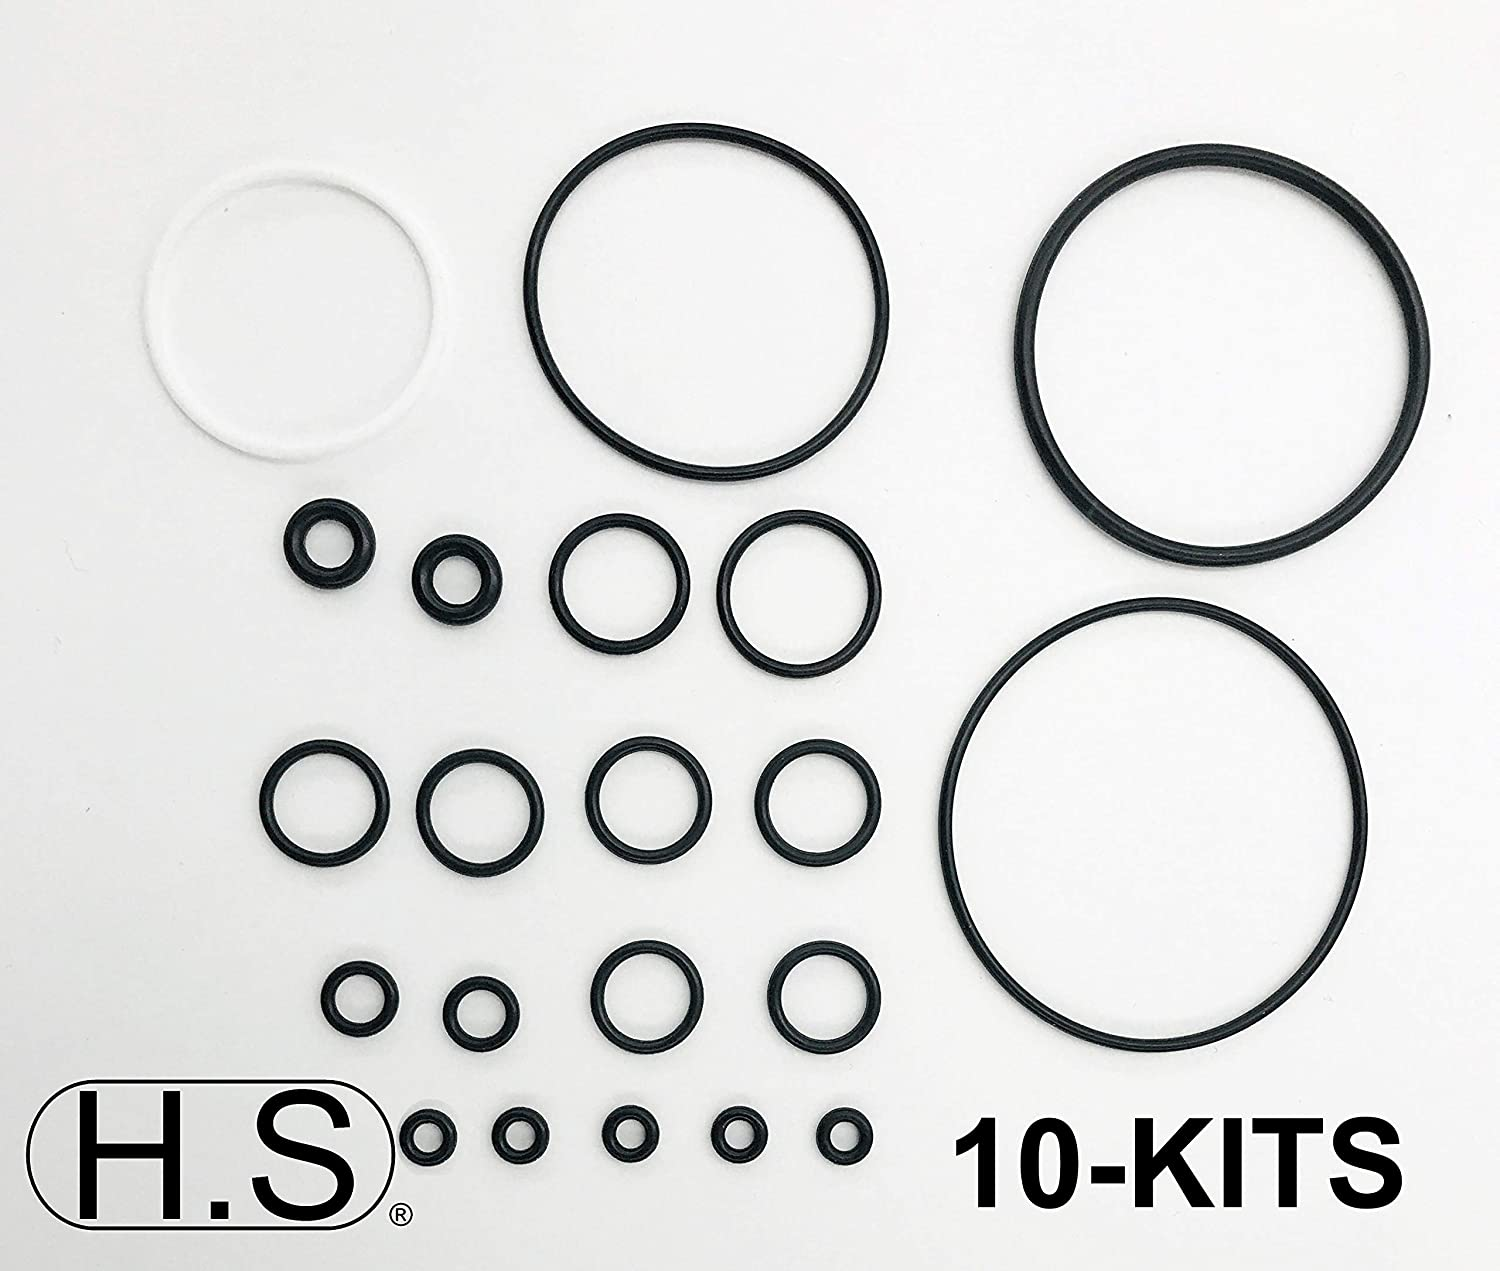 1 MTC Fits Graco Fusion AP Air Purge 246355 H.S O Ring Rebuild Kit fits 246355 Graco Fusion AP Air Purge O-Ring